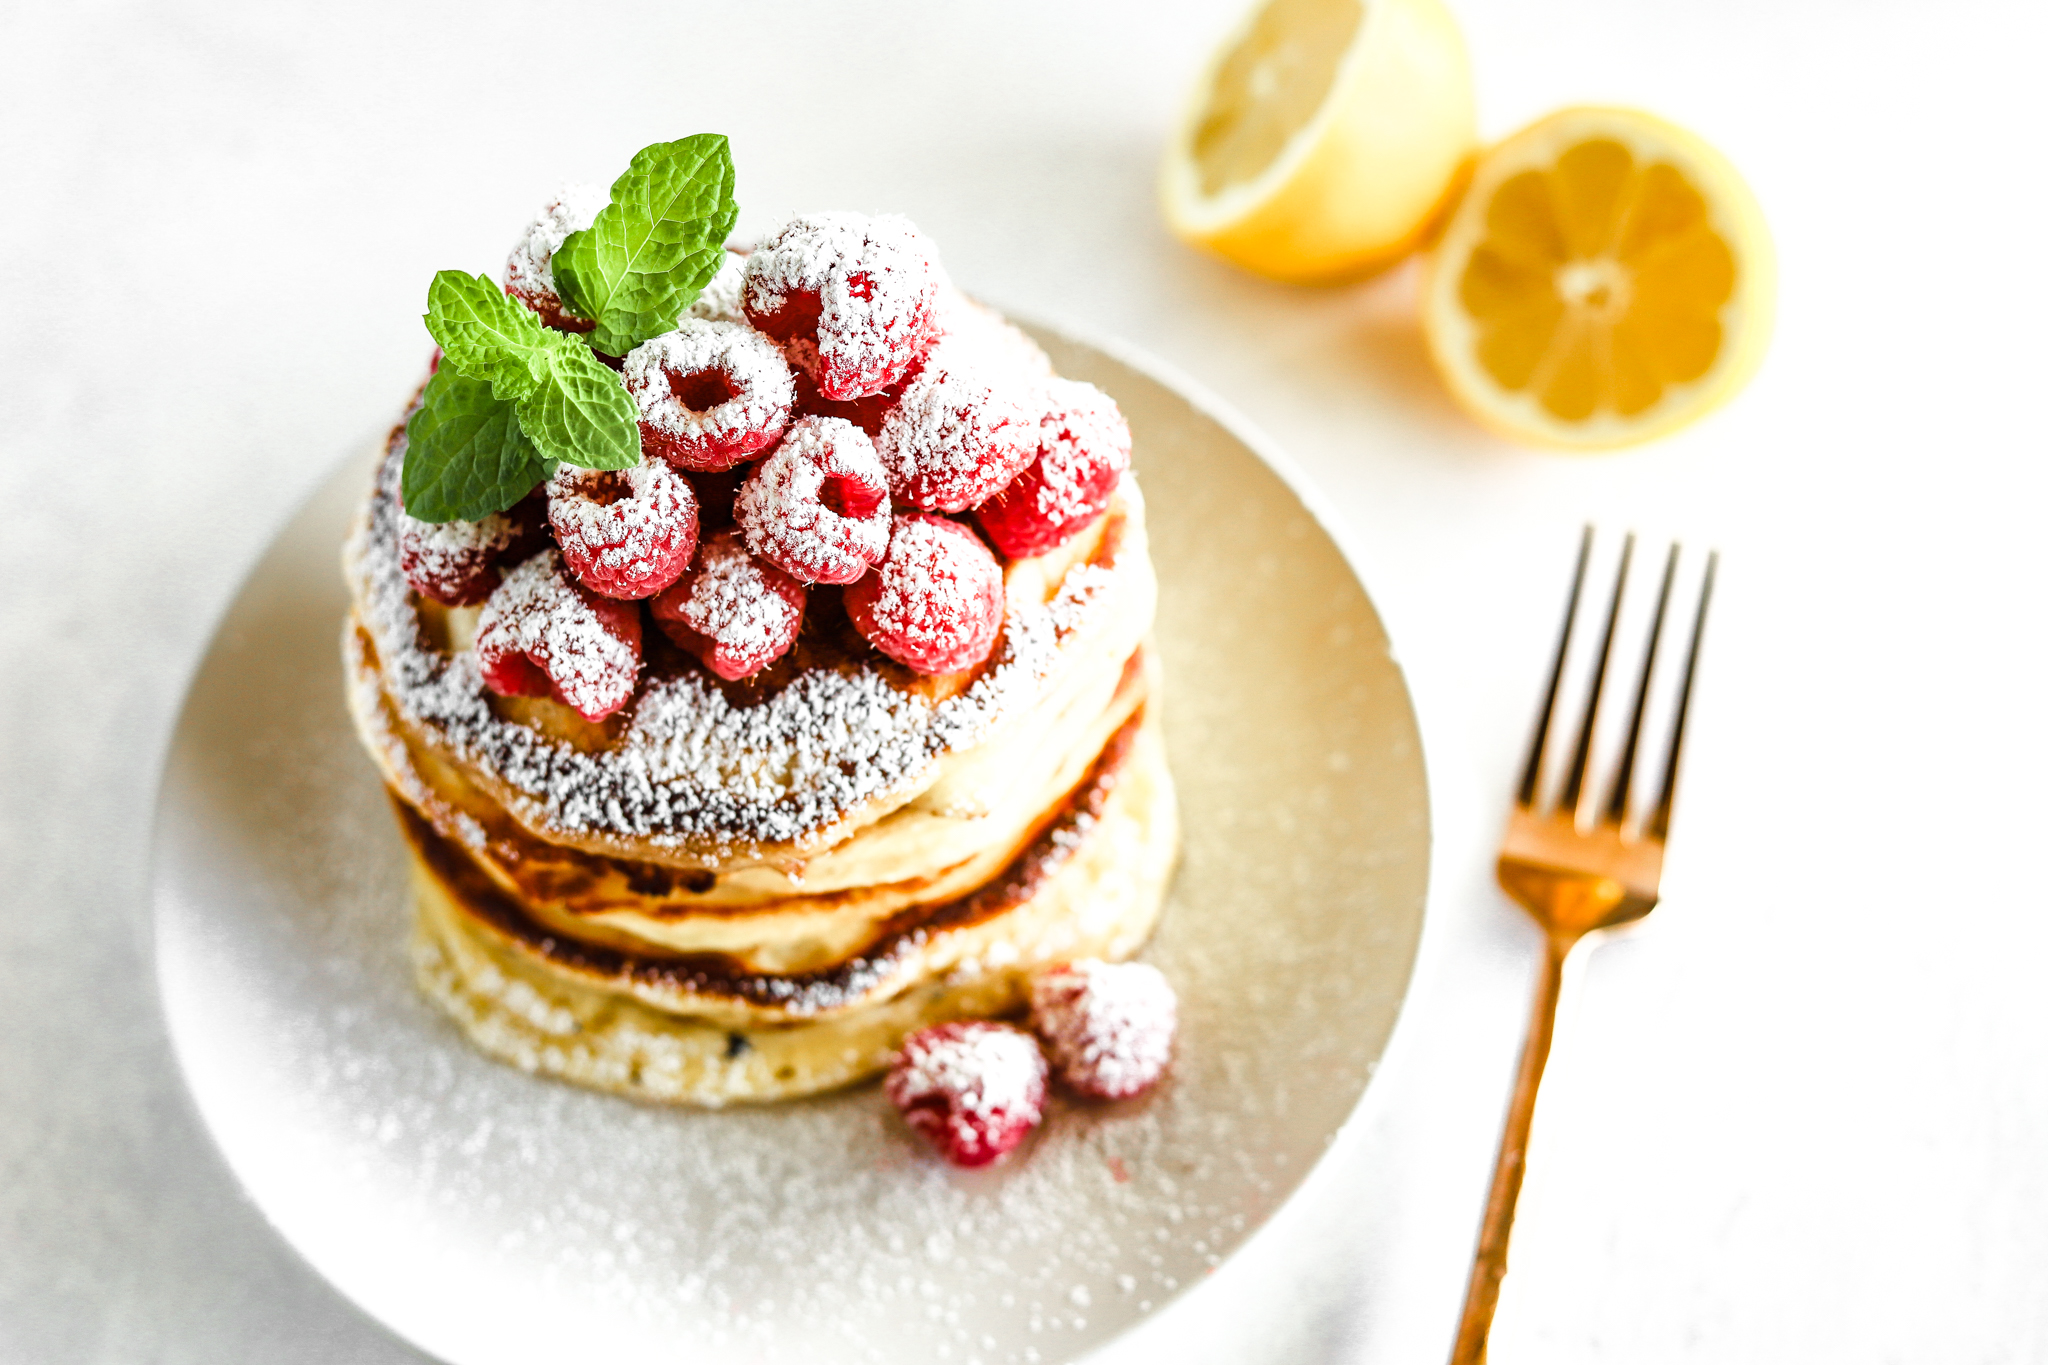 Lemon ricotta pancakes topped with raspberries and garnished with powdered sugar, mint, and paired with a rose gold fork.